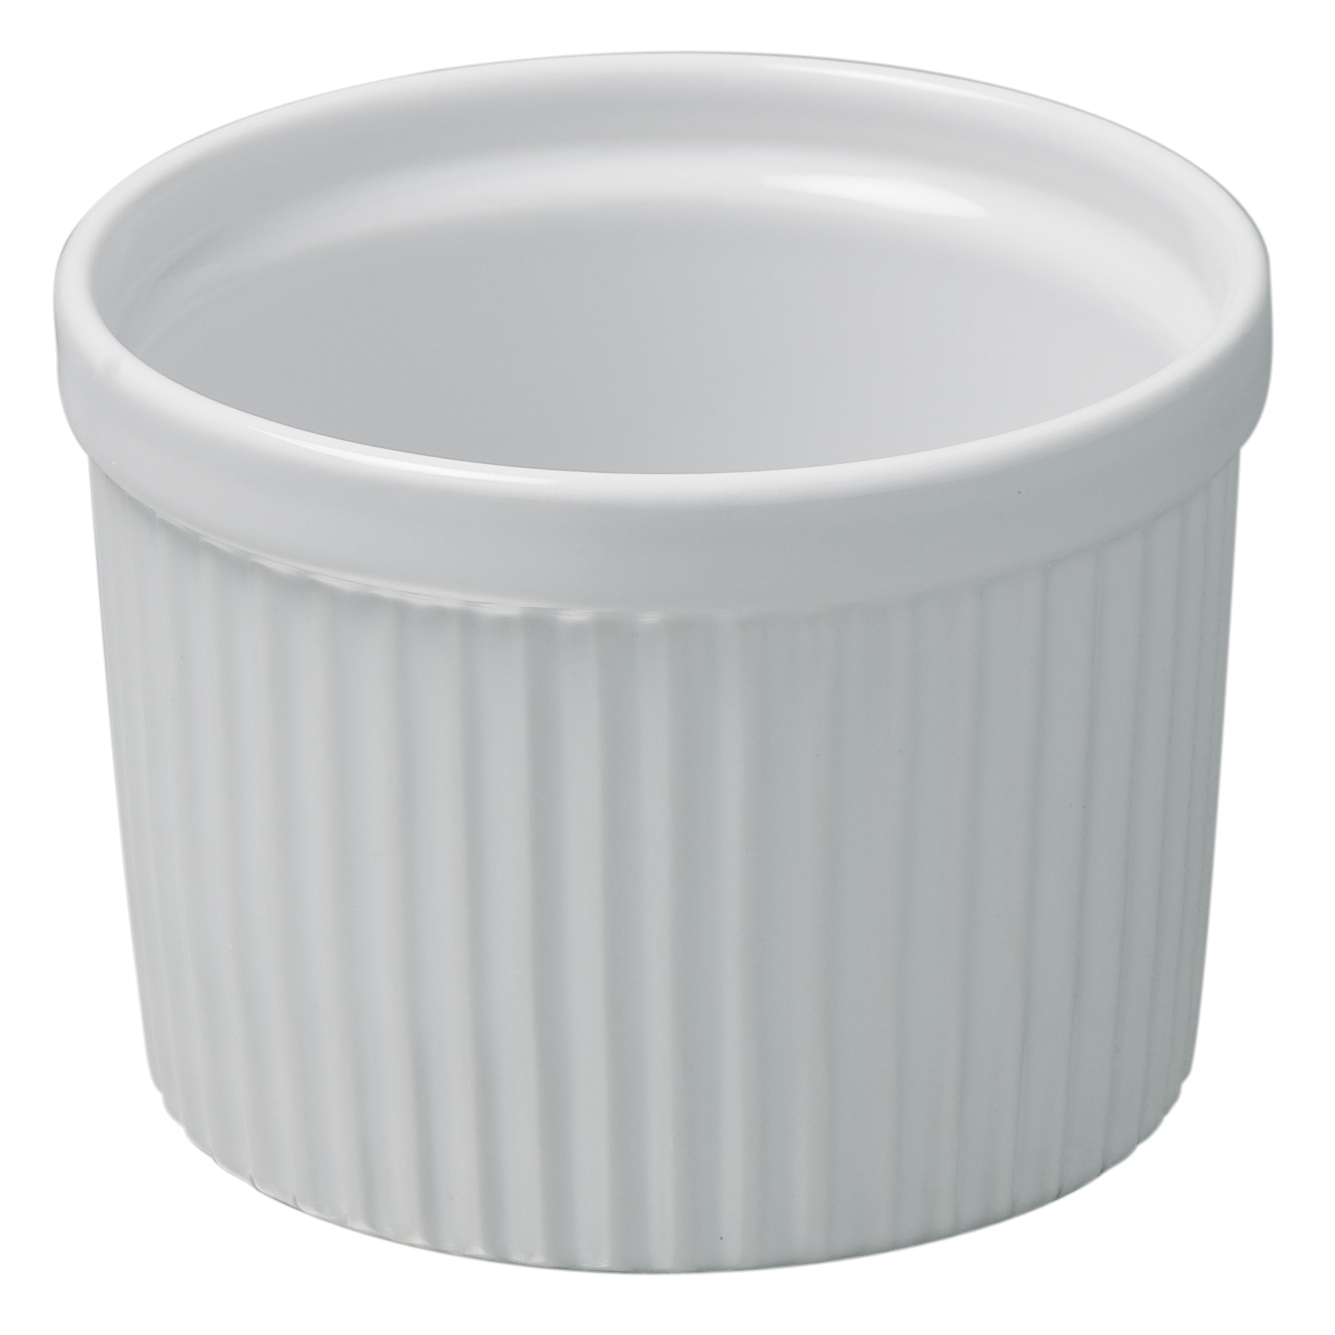 Revol French Classique White Porcelain 8 Ounce Ramekin